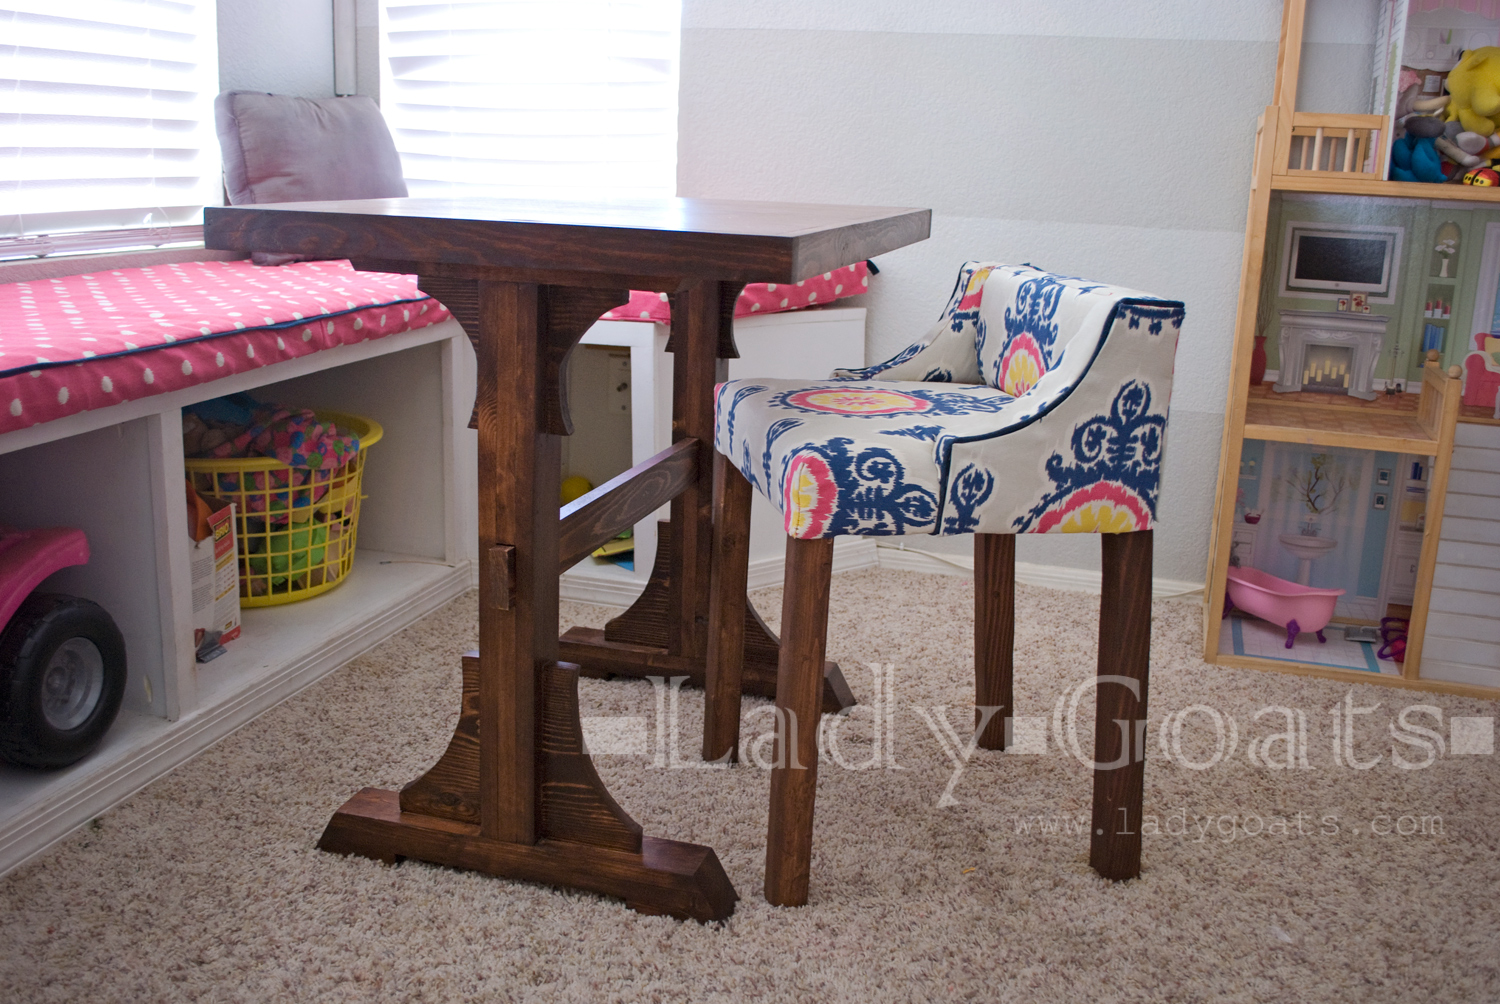 hobby lobby table and chairs white nursery rocking chair lady goats you re so vain my friend london i had picked out this fabric from because was planning on reupholstering window seat cushion before walking in